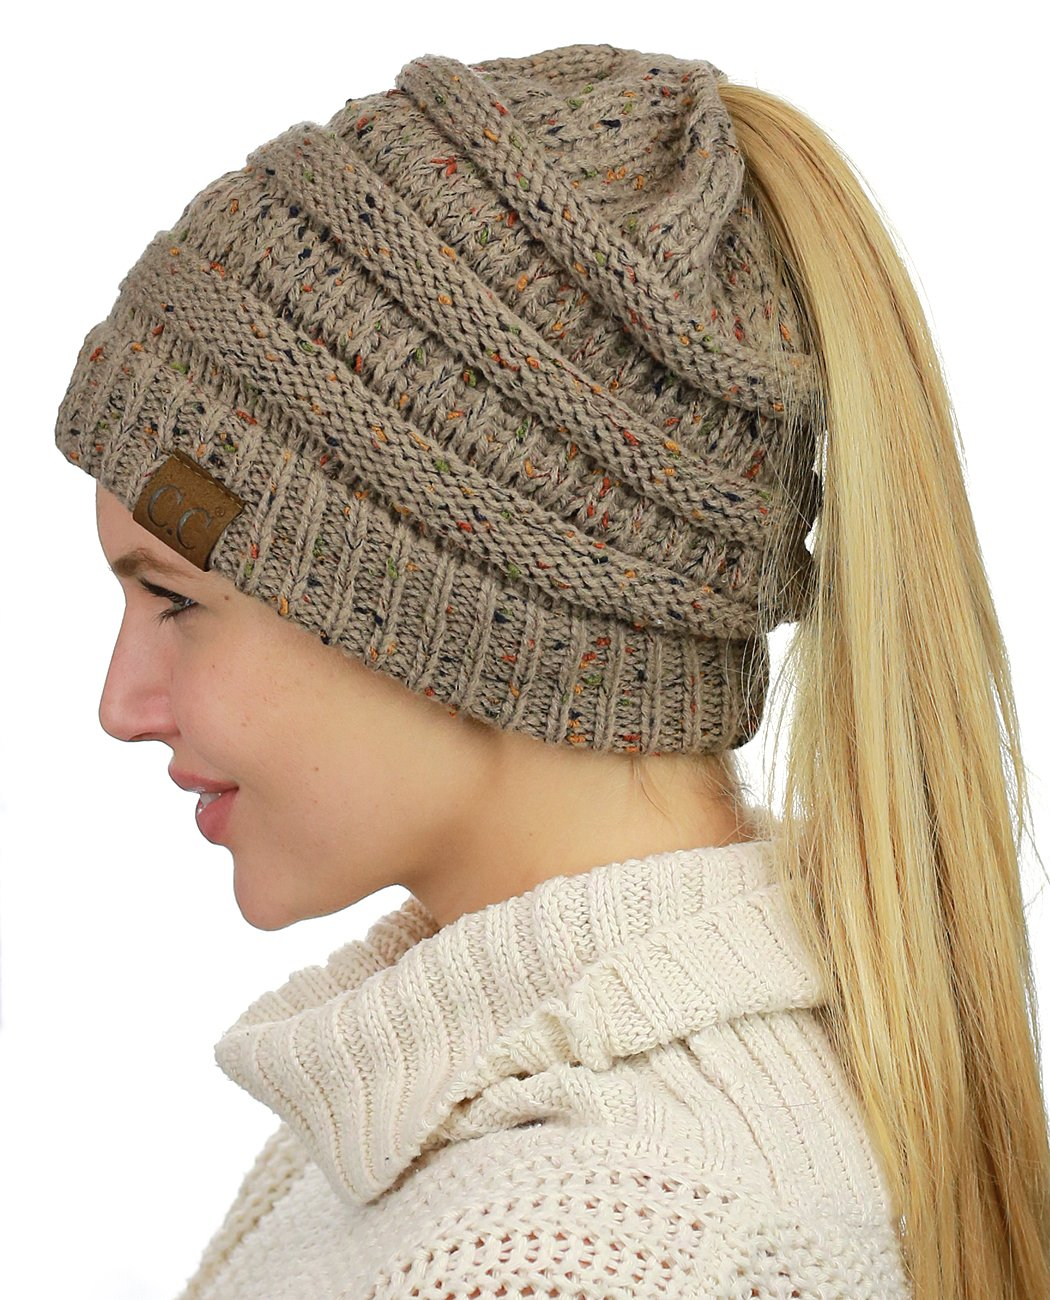 94d56bad3b3 C.C BeanieTail Soft Stretch Cable Knit Messy High Bun Ponytail Beanie Hat -  FBA CA MB33-TAUPE   Headwear   Clothing